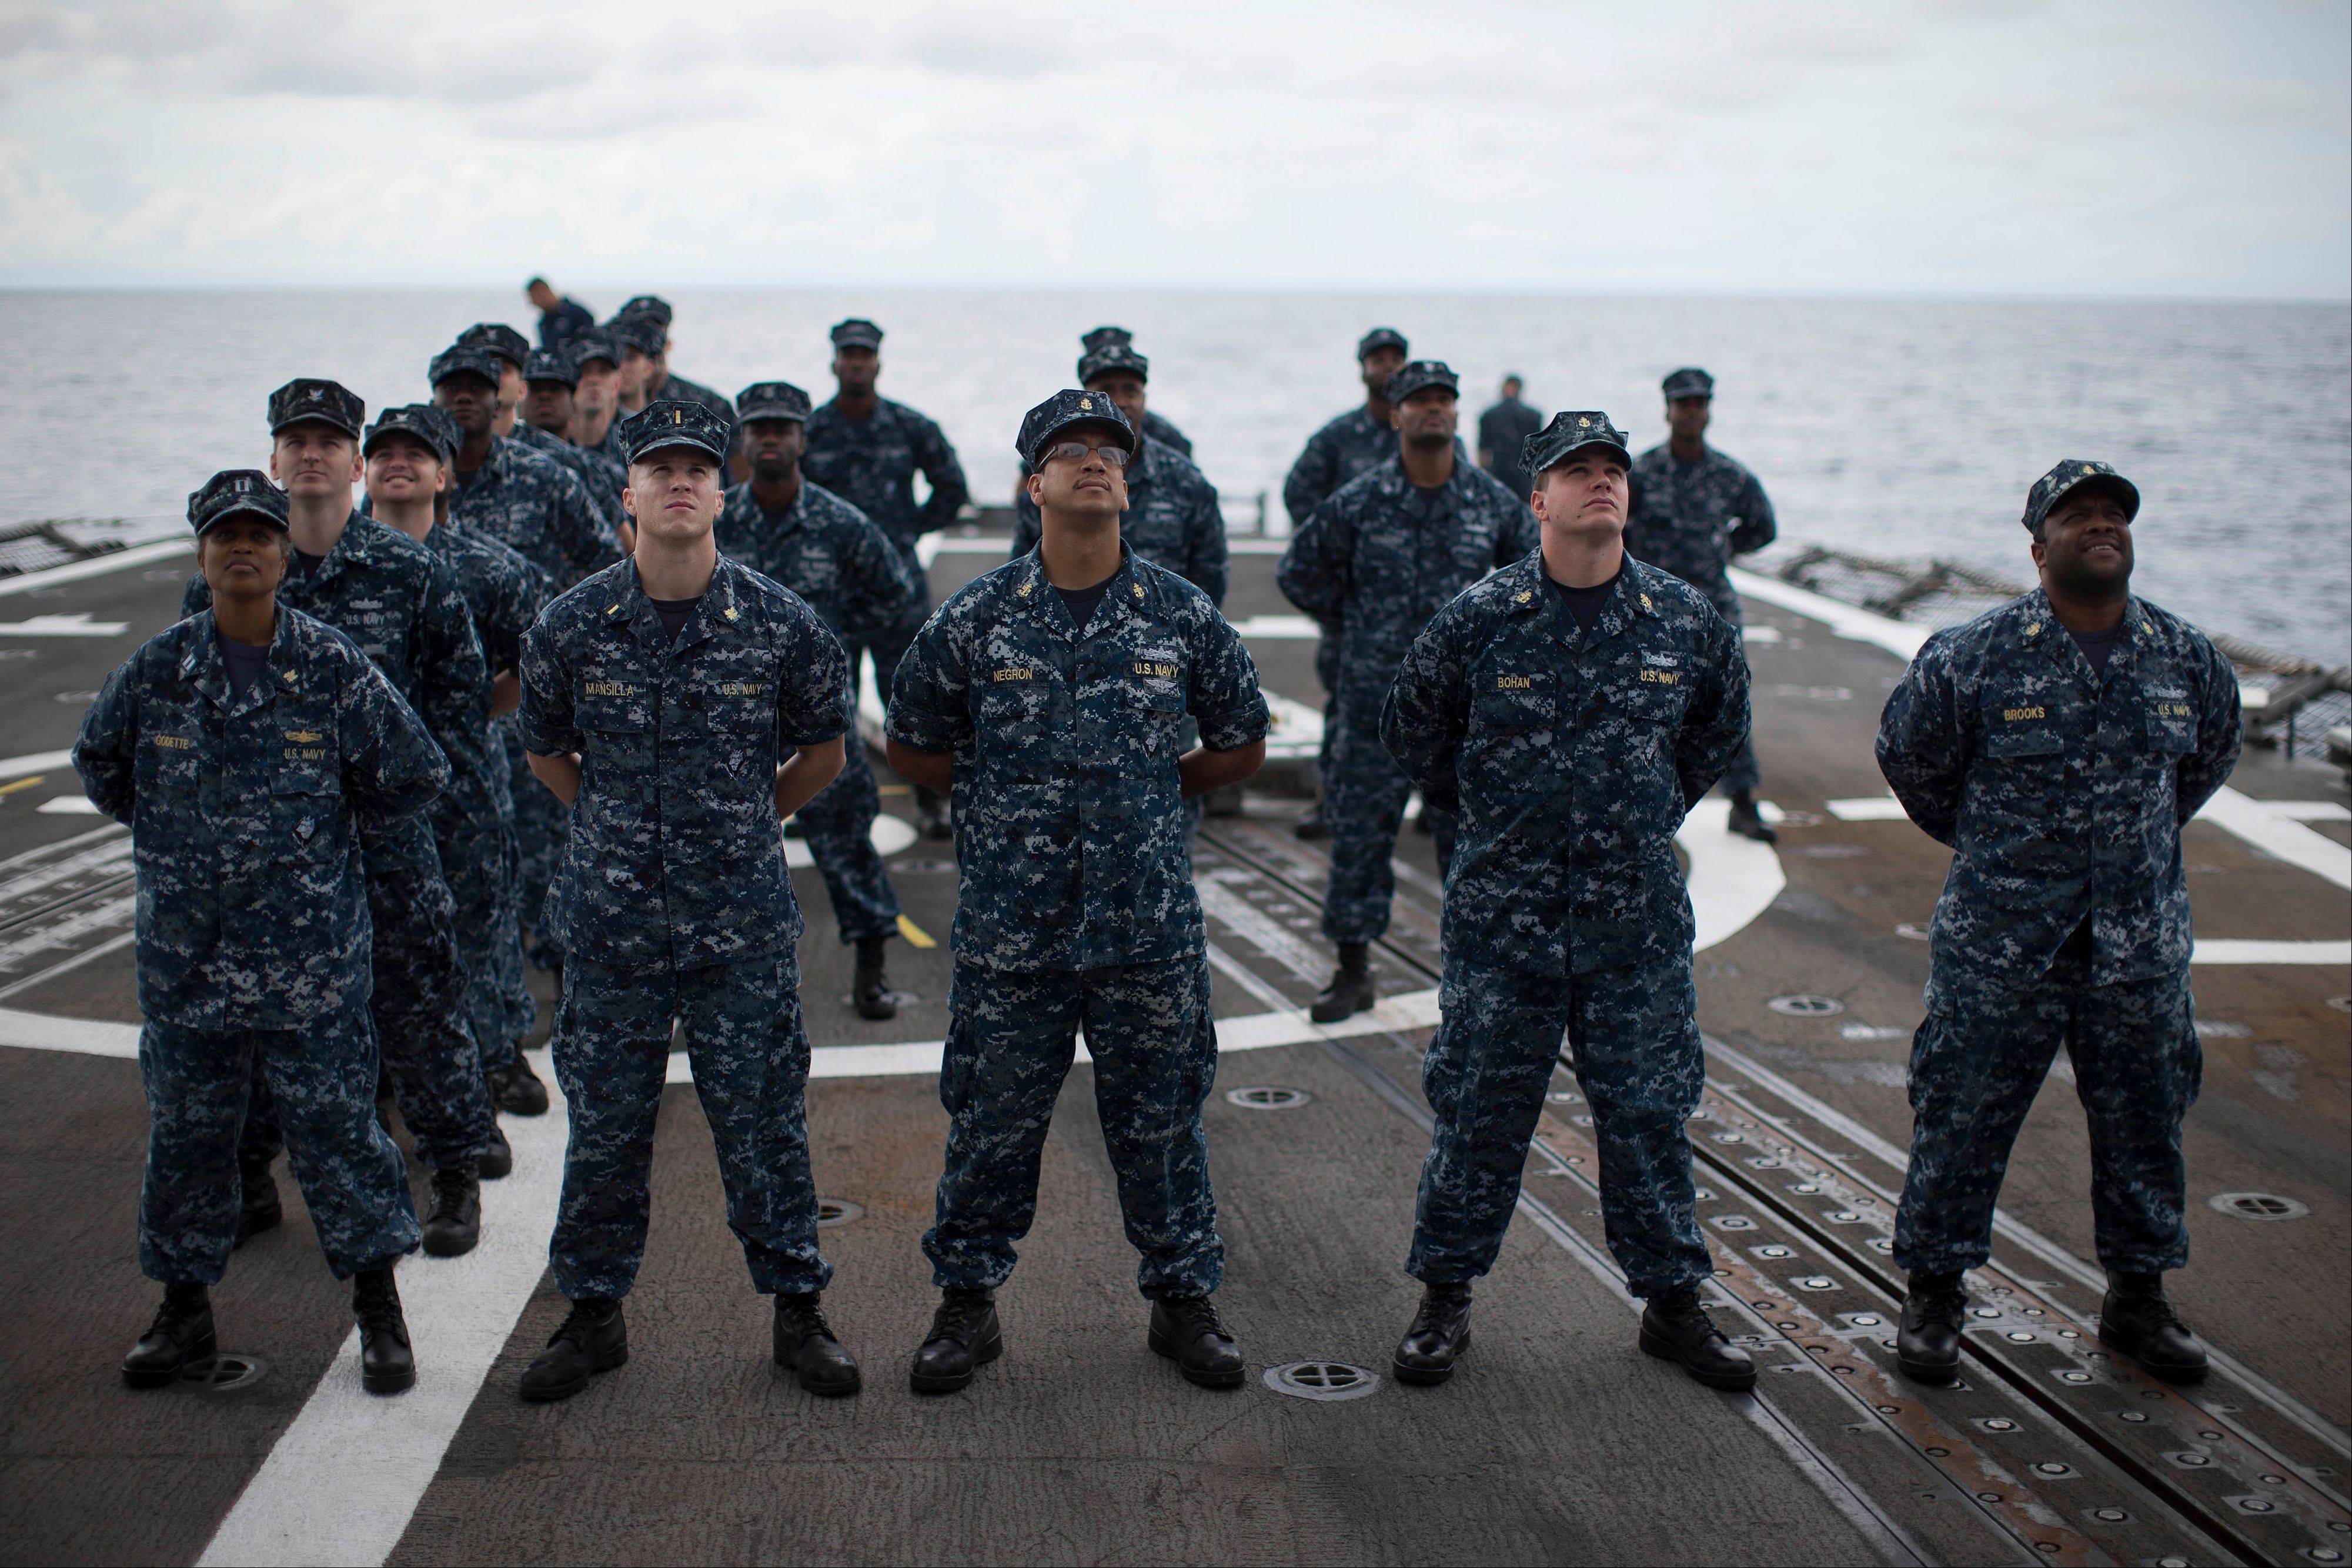 Sailors pose for a photo on the flight deck of the USS Underwood while patrolling in international waters near Panama.